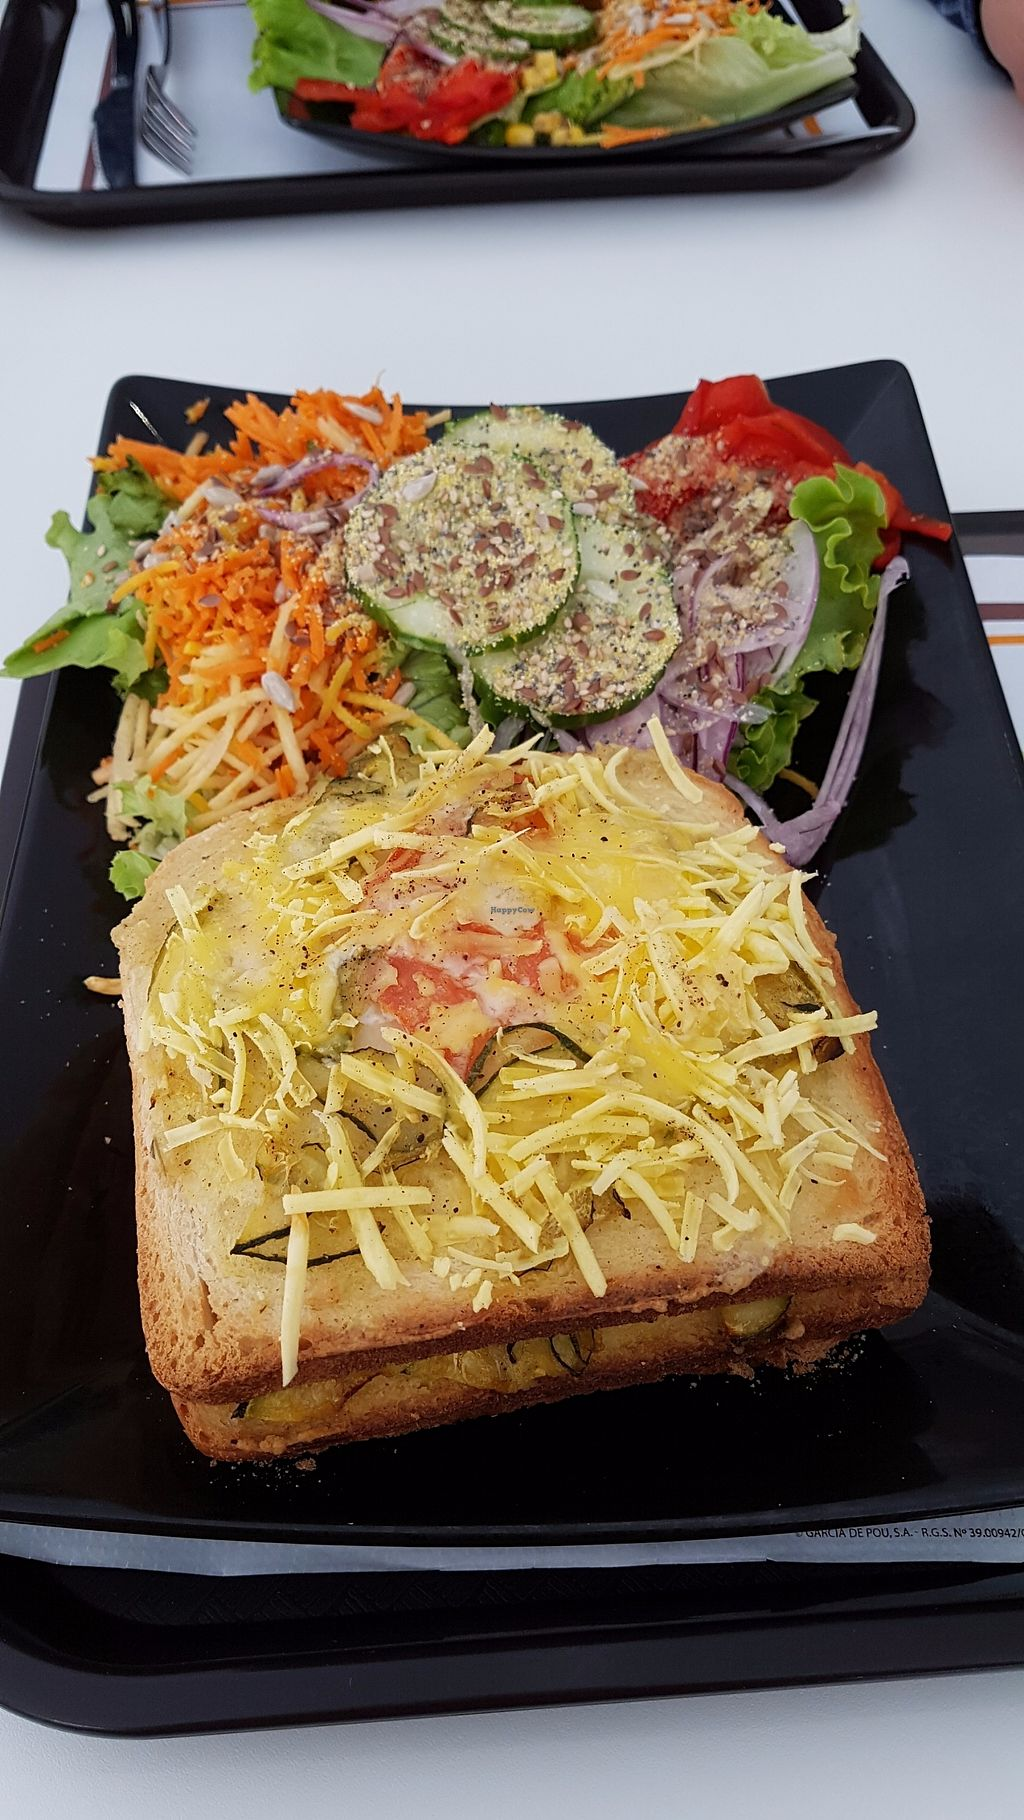 """Photo of Veggie Corner  by <a href=""""/members/profile/JonJon"""">JonJon</a> <br/>Croque-monsieur <br/> September 19, 2017  - <a href='/contact/abuse/image/90289/306051'>Report</a>"""